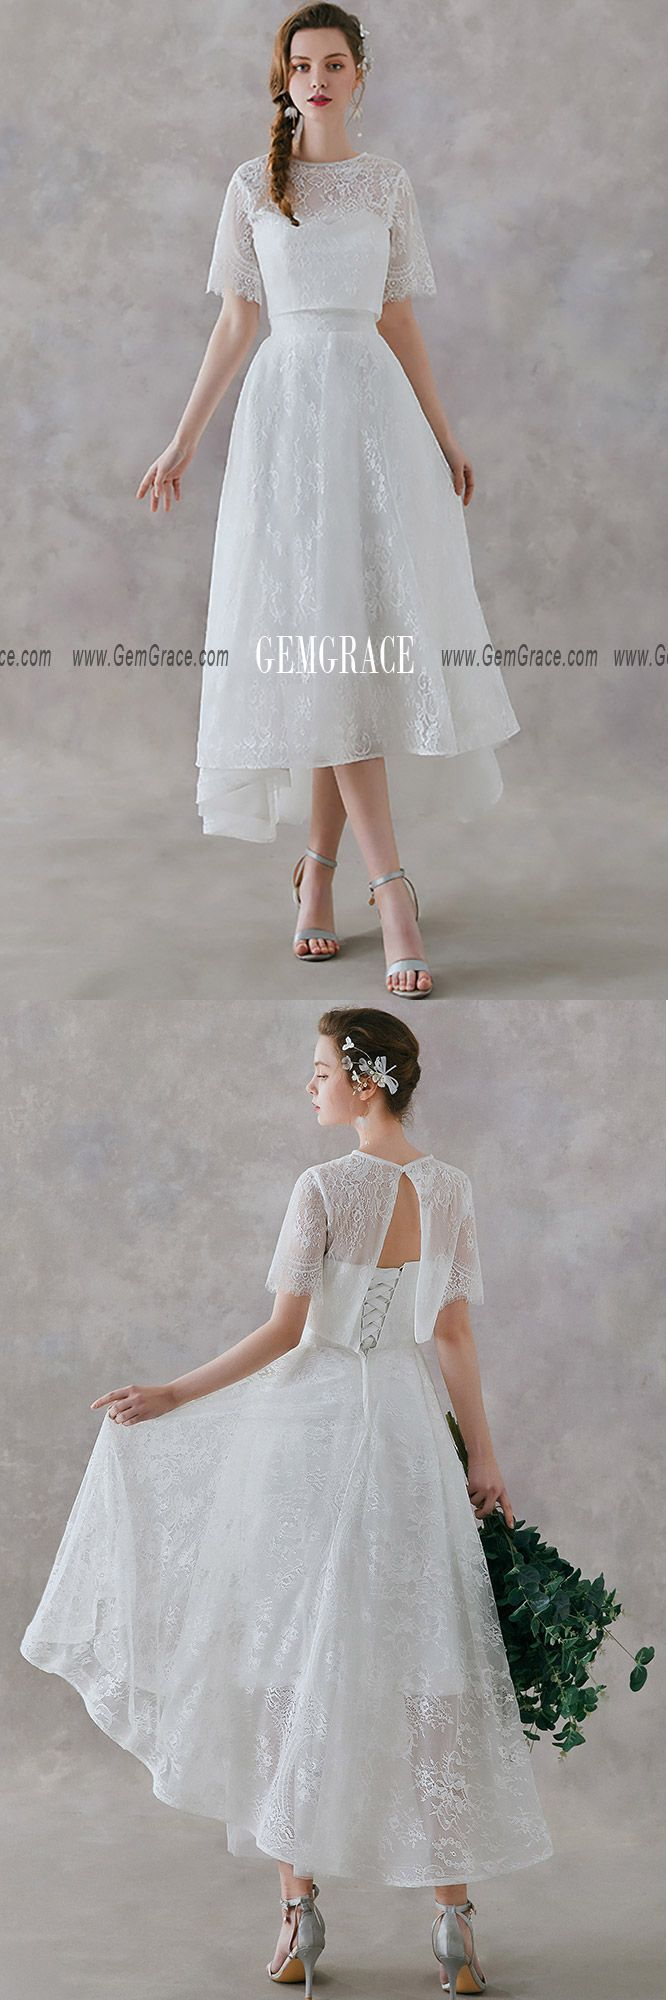 148 89 Retro High Low Lace Two Pieces Wedding Dress Tea Length For Country Outdoor Weddings Ys610 Gemgrace Com Retro Wedding Dress Tea Length Outdoor Wedding Dress Retro Wedding Dresses [ 2000 x 668 Pixel ]